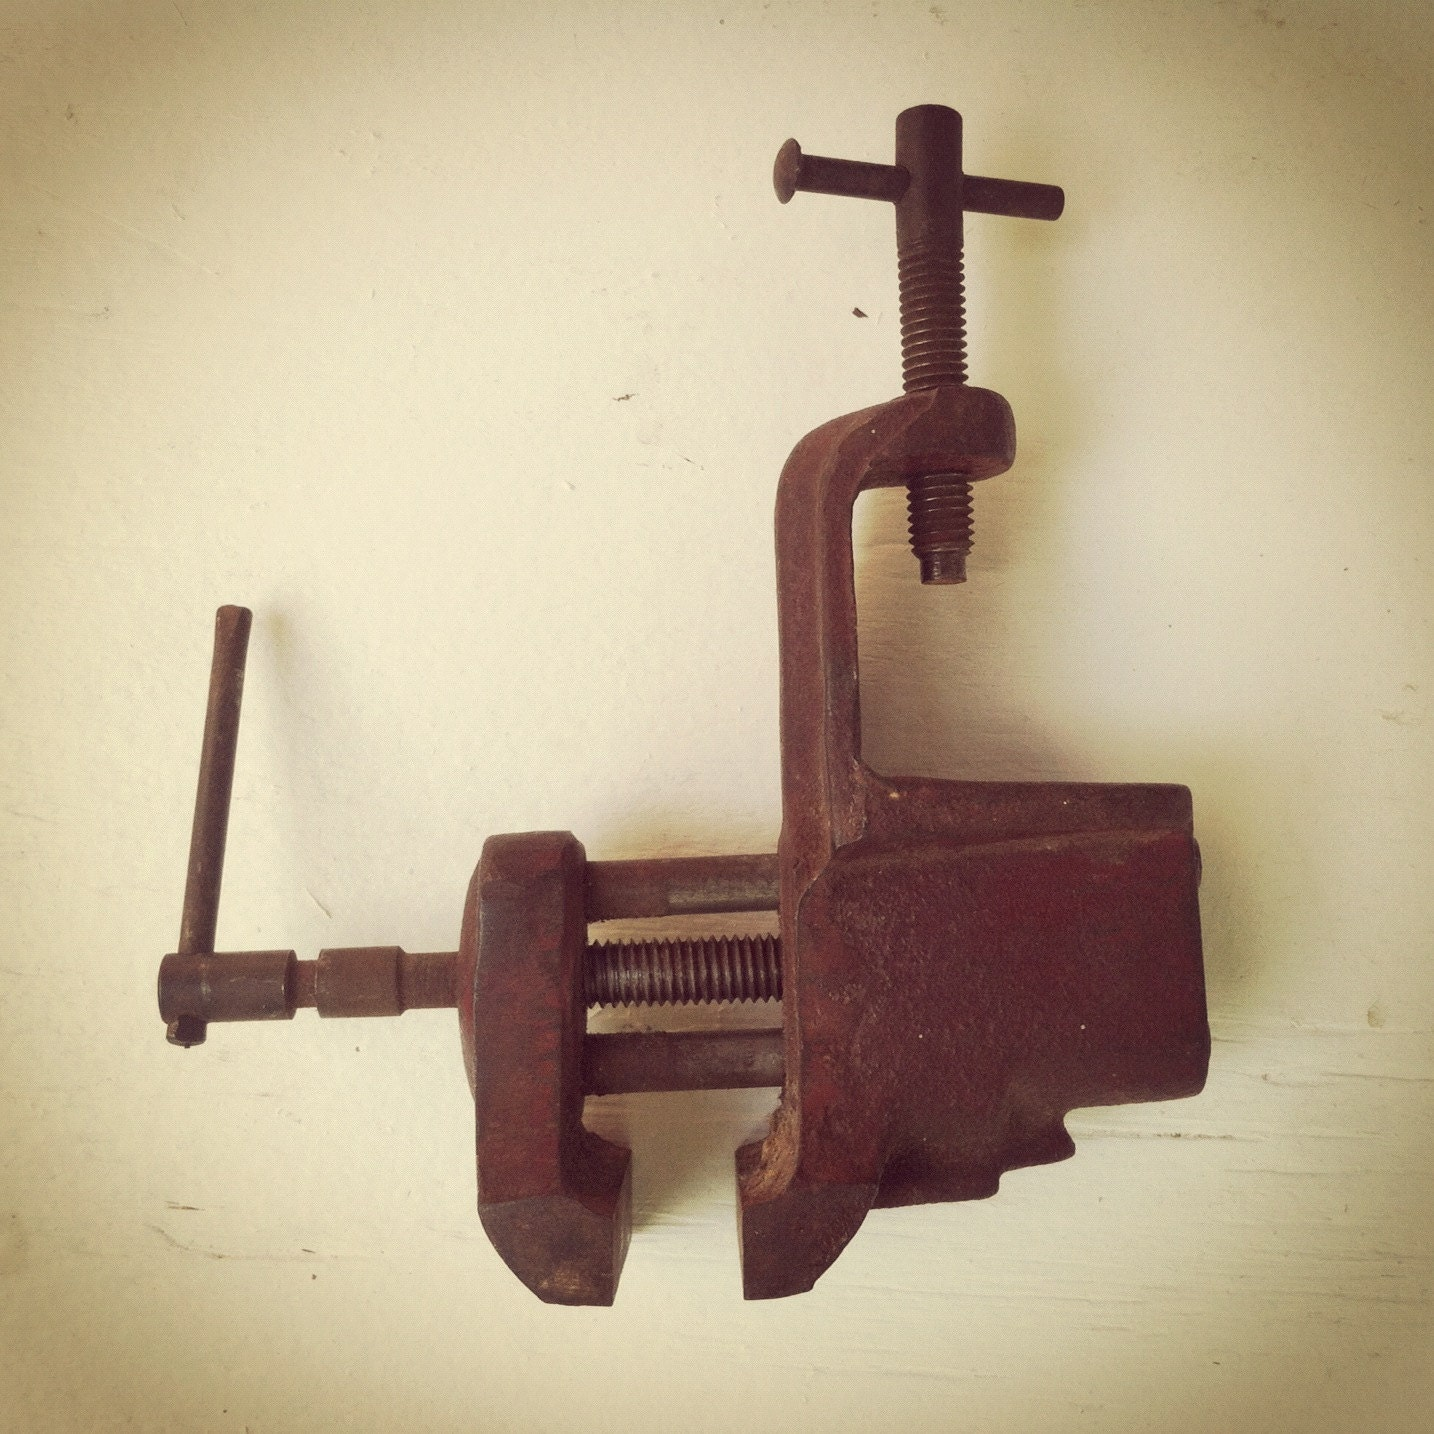 Vintage Workshop Vise - OldMansDen